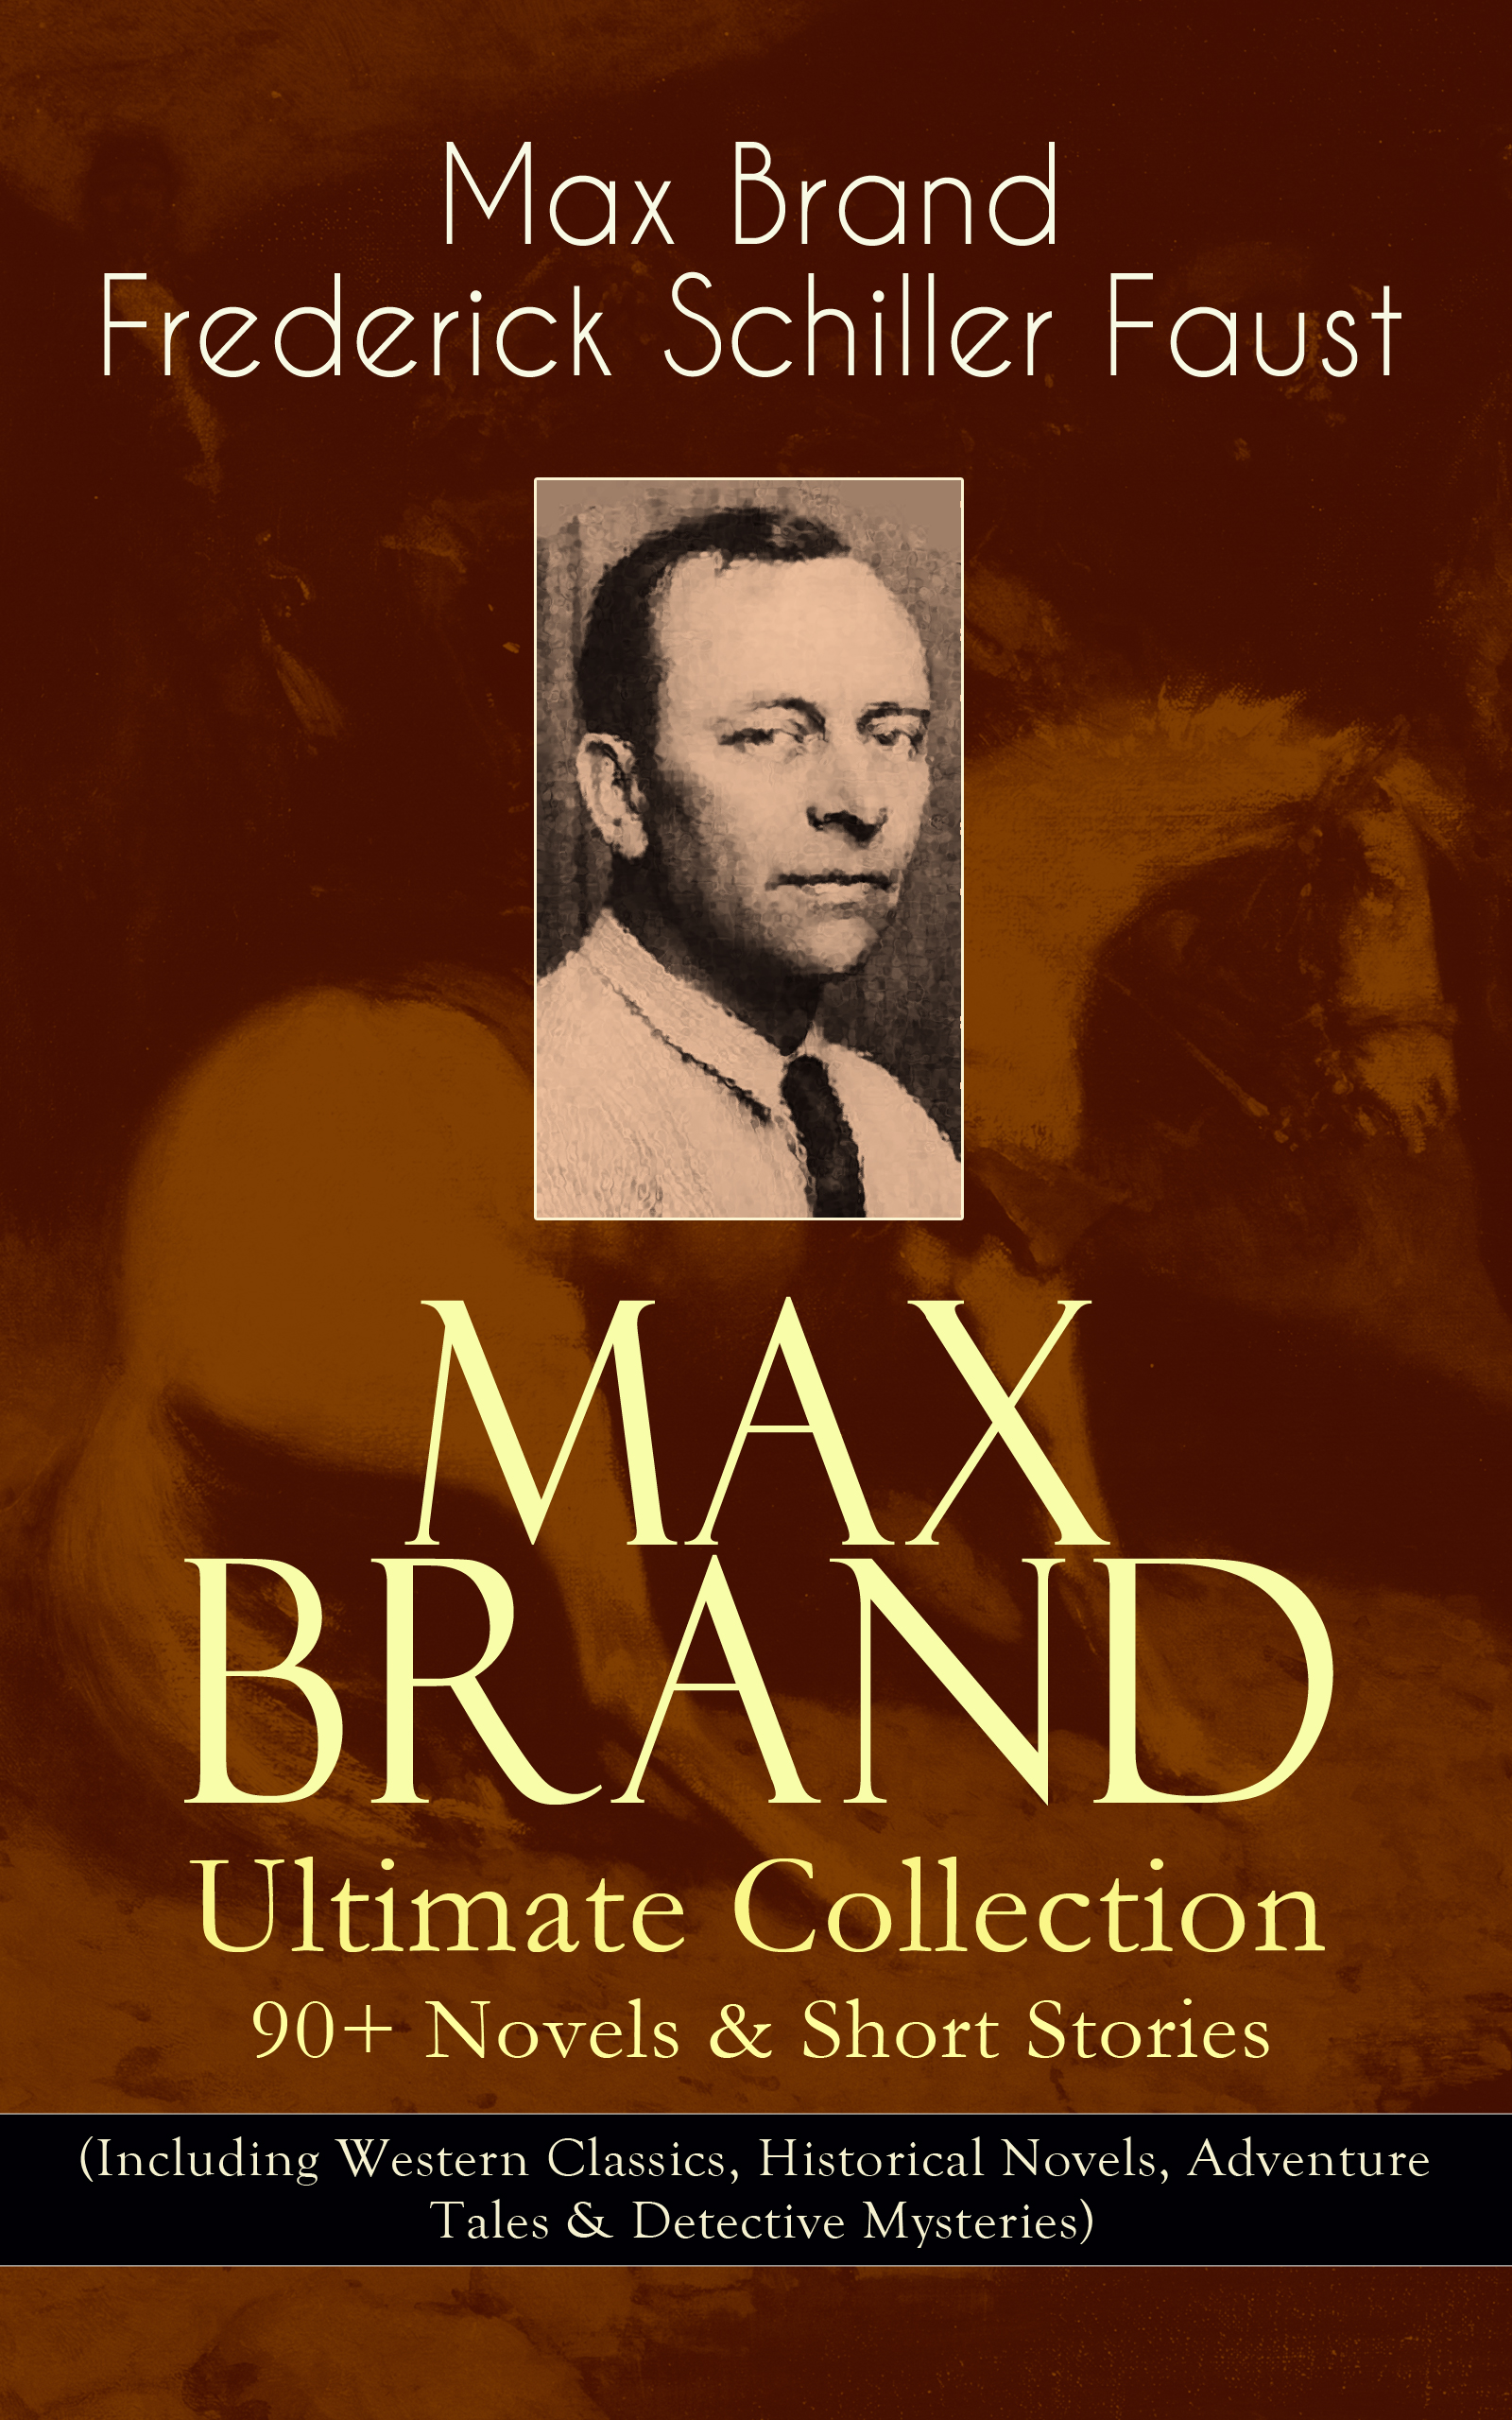 max brand ultimate collection 90 novels short stories including western classics historical novels adventure tales detective mysteries